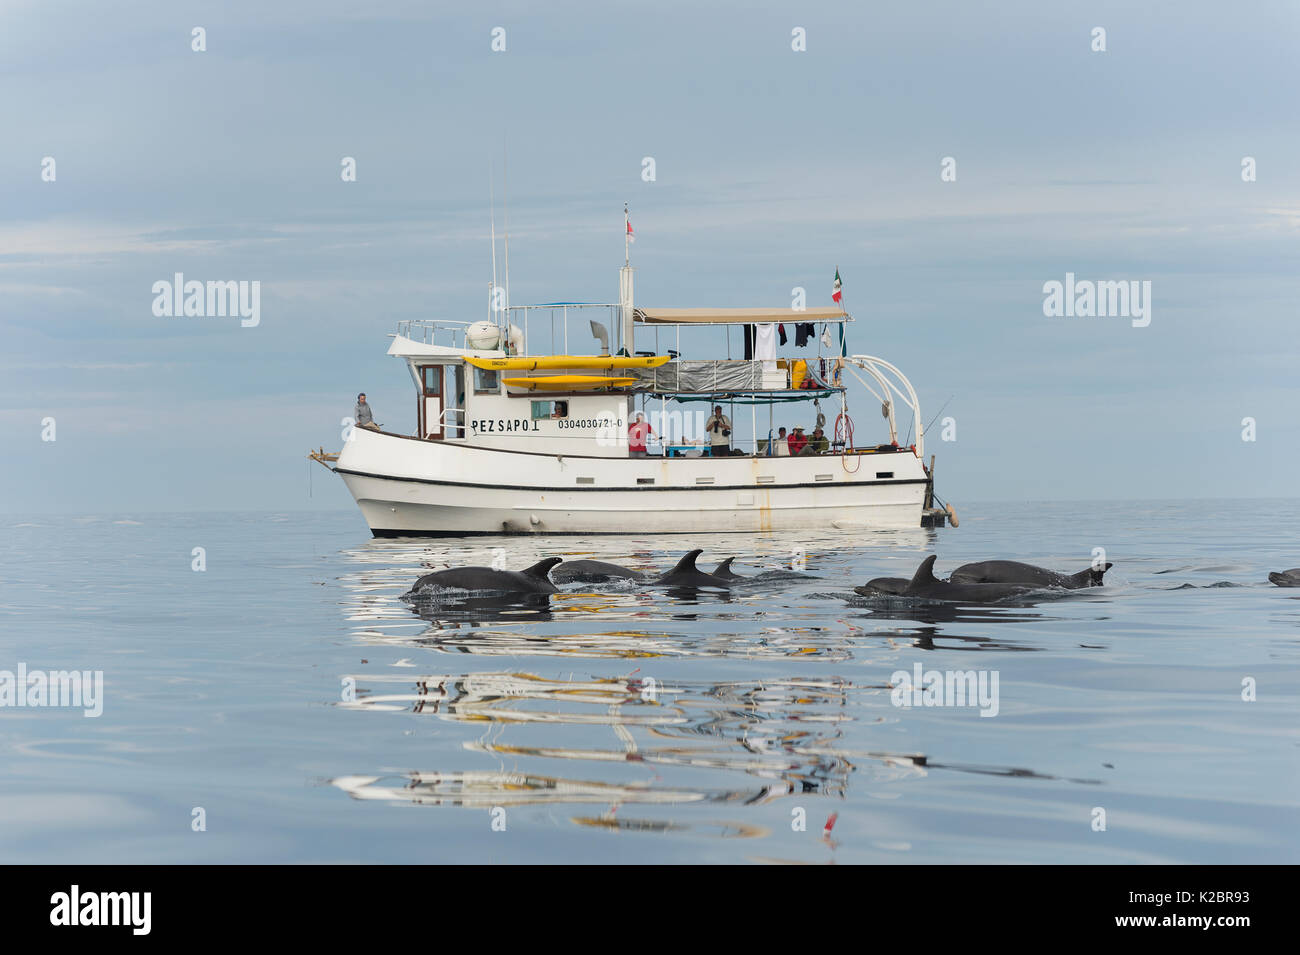 Bottlenose dolphins (Tursiops truncatus) traveling alongside the Baja Expeditions boat, Gulf of California, Mexico. All non-editorial uses must be cleared individually. - Stock Image